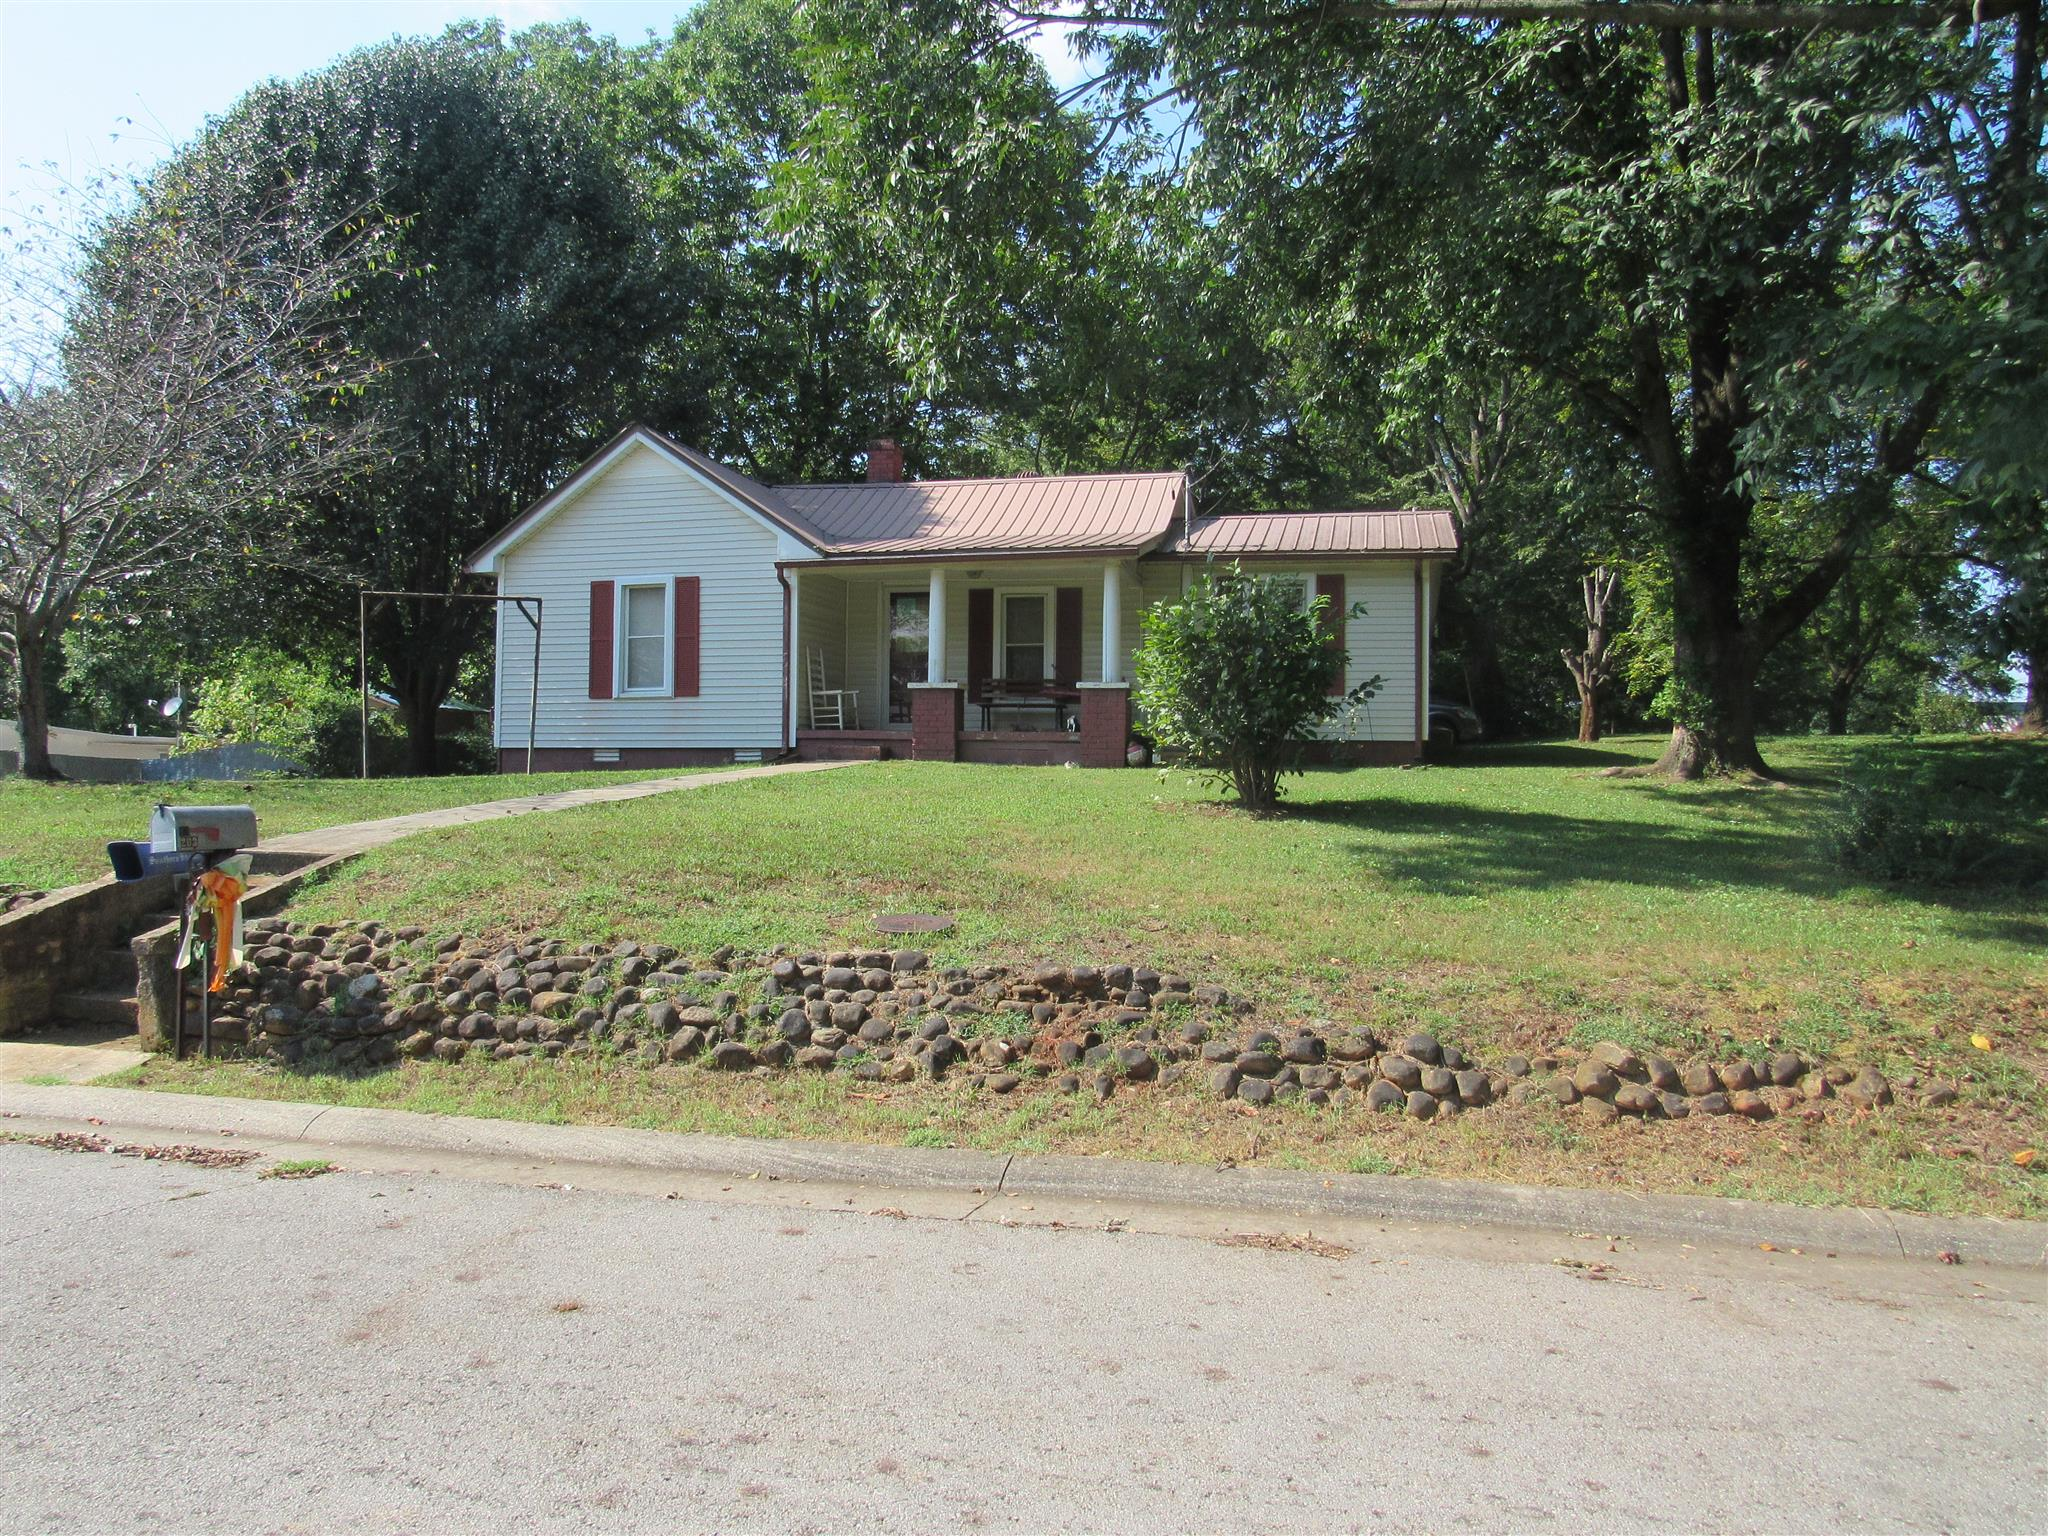 203 Gay St, McMinnville, TN 37110 - McMinnville, TN real estate listing